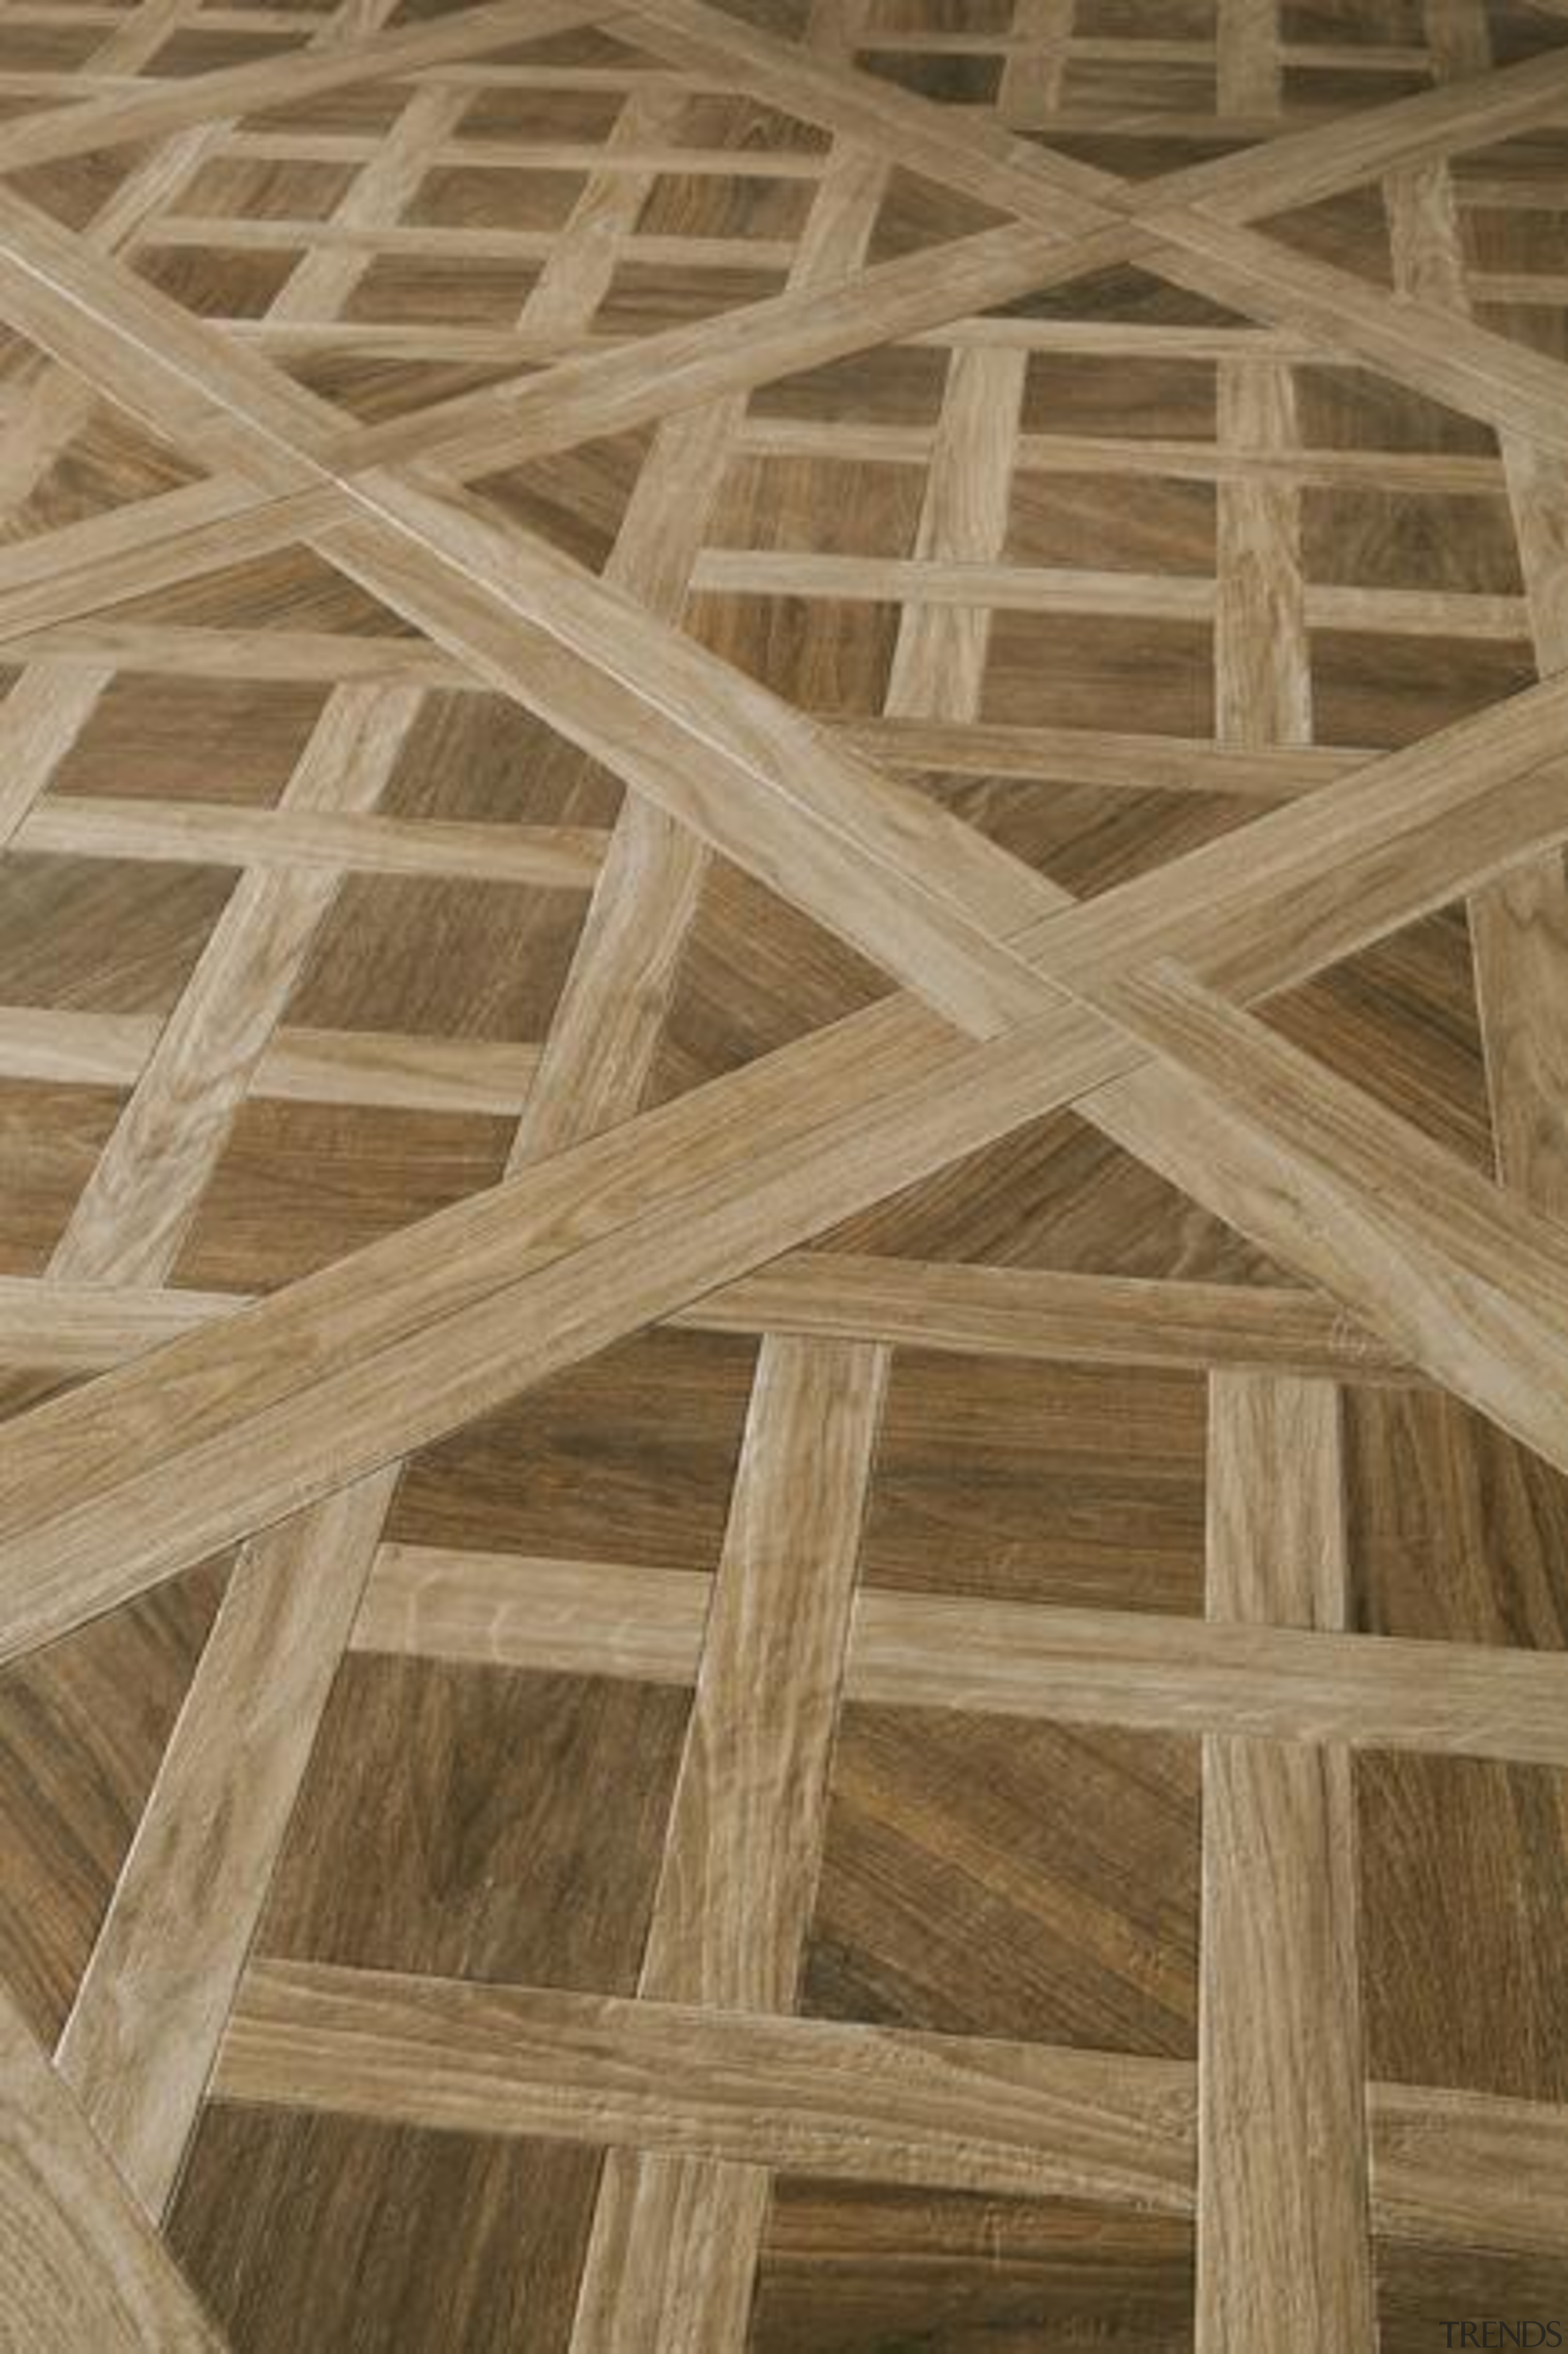 The charm of antique parquet flooring is now daylighting, floor, flooring, hardwood, line, lumber, plywood, structure, texture, wood, wood flooring, brown